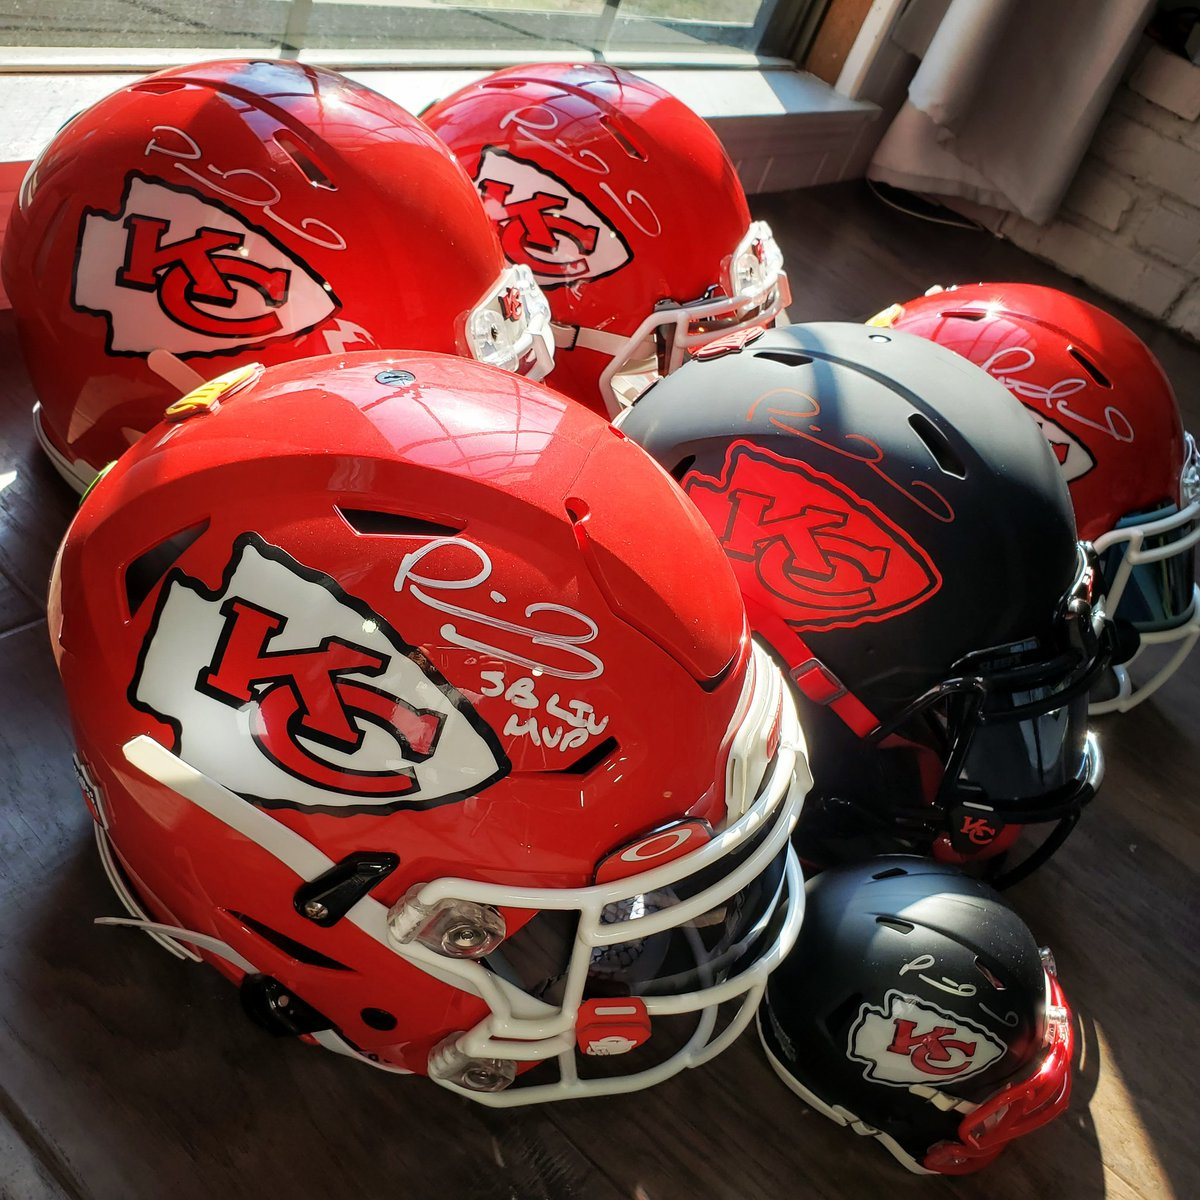 I'm not obsessed... you're obsessed #ChiefsKingdom #KansasCity #PatrickMahomes